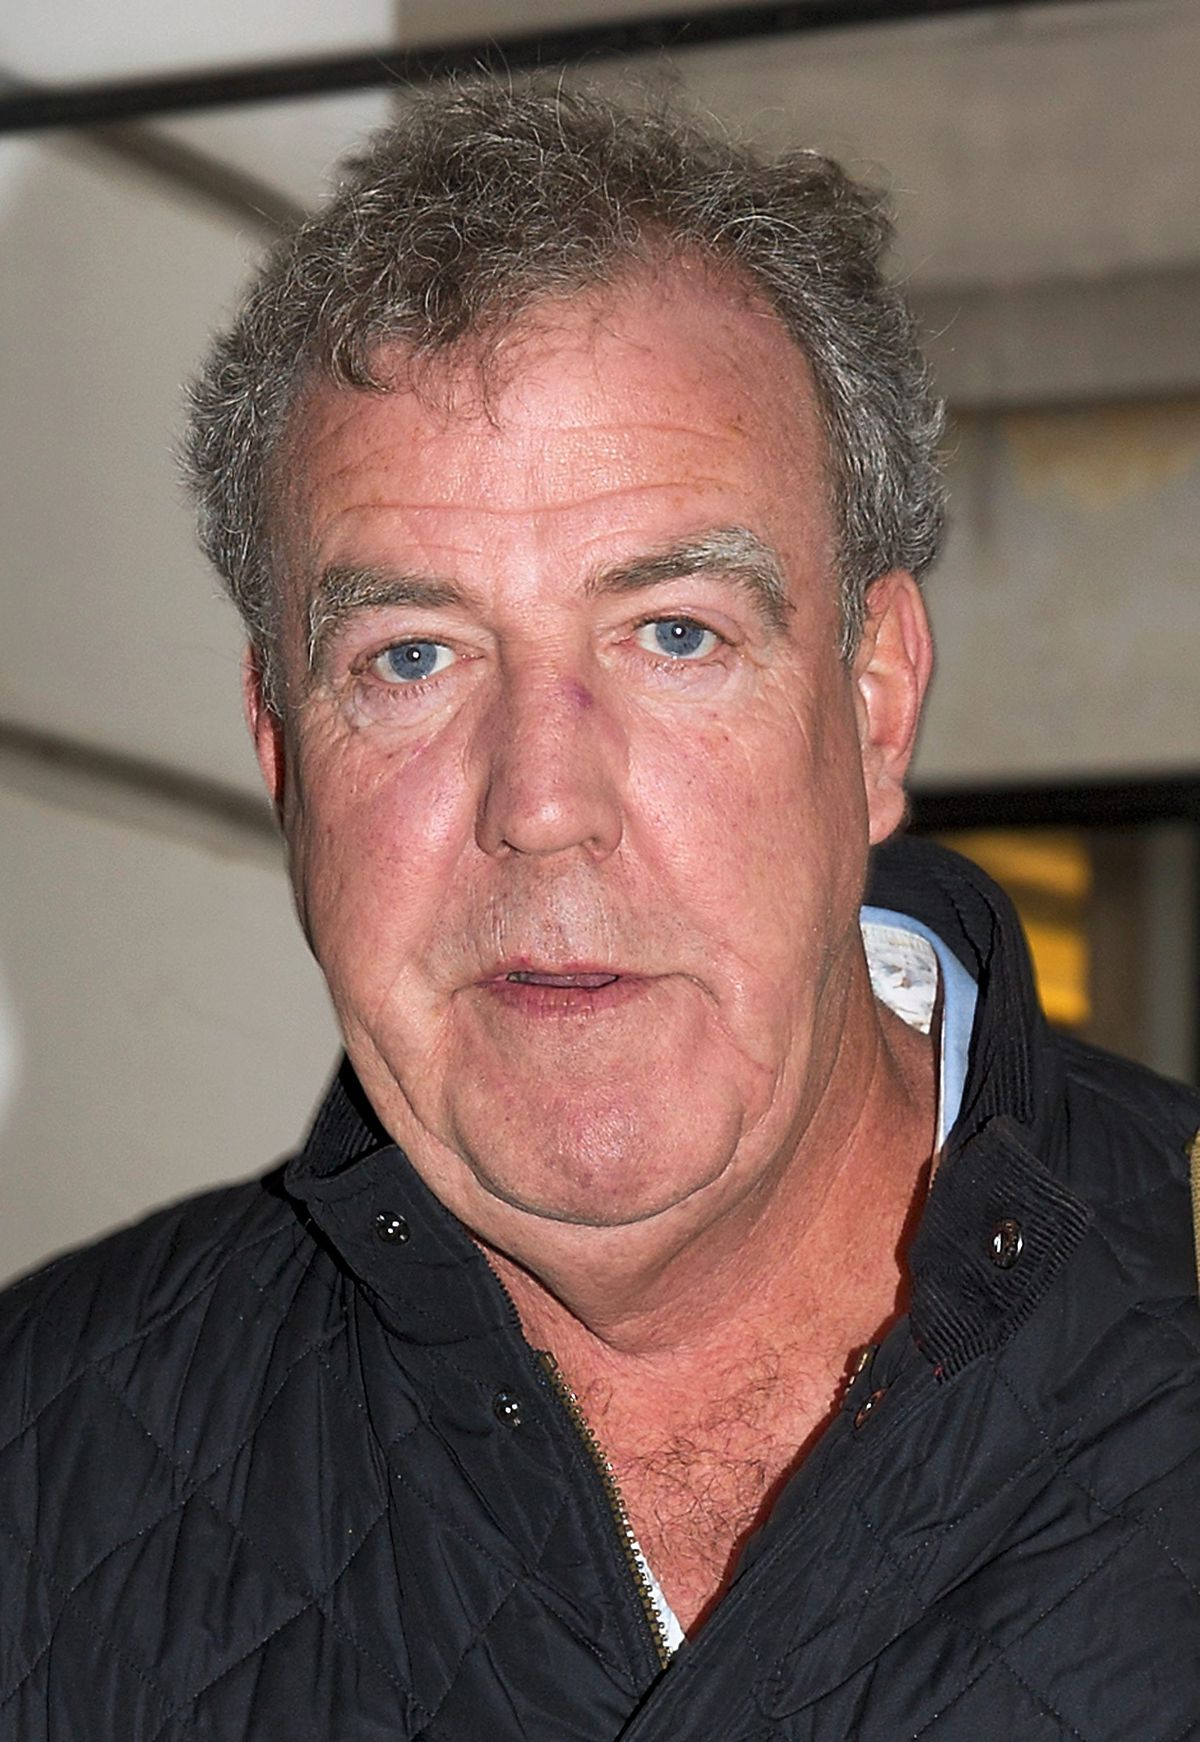 Jeremy Clarkson says parents should stop whingeing about food parcels